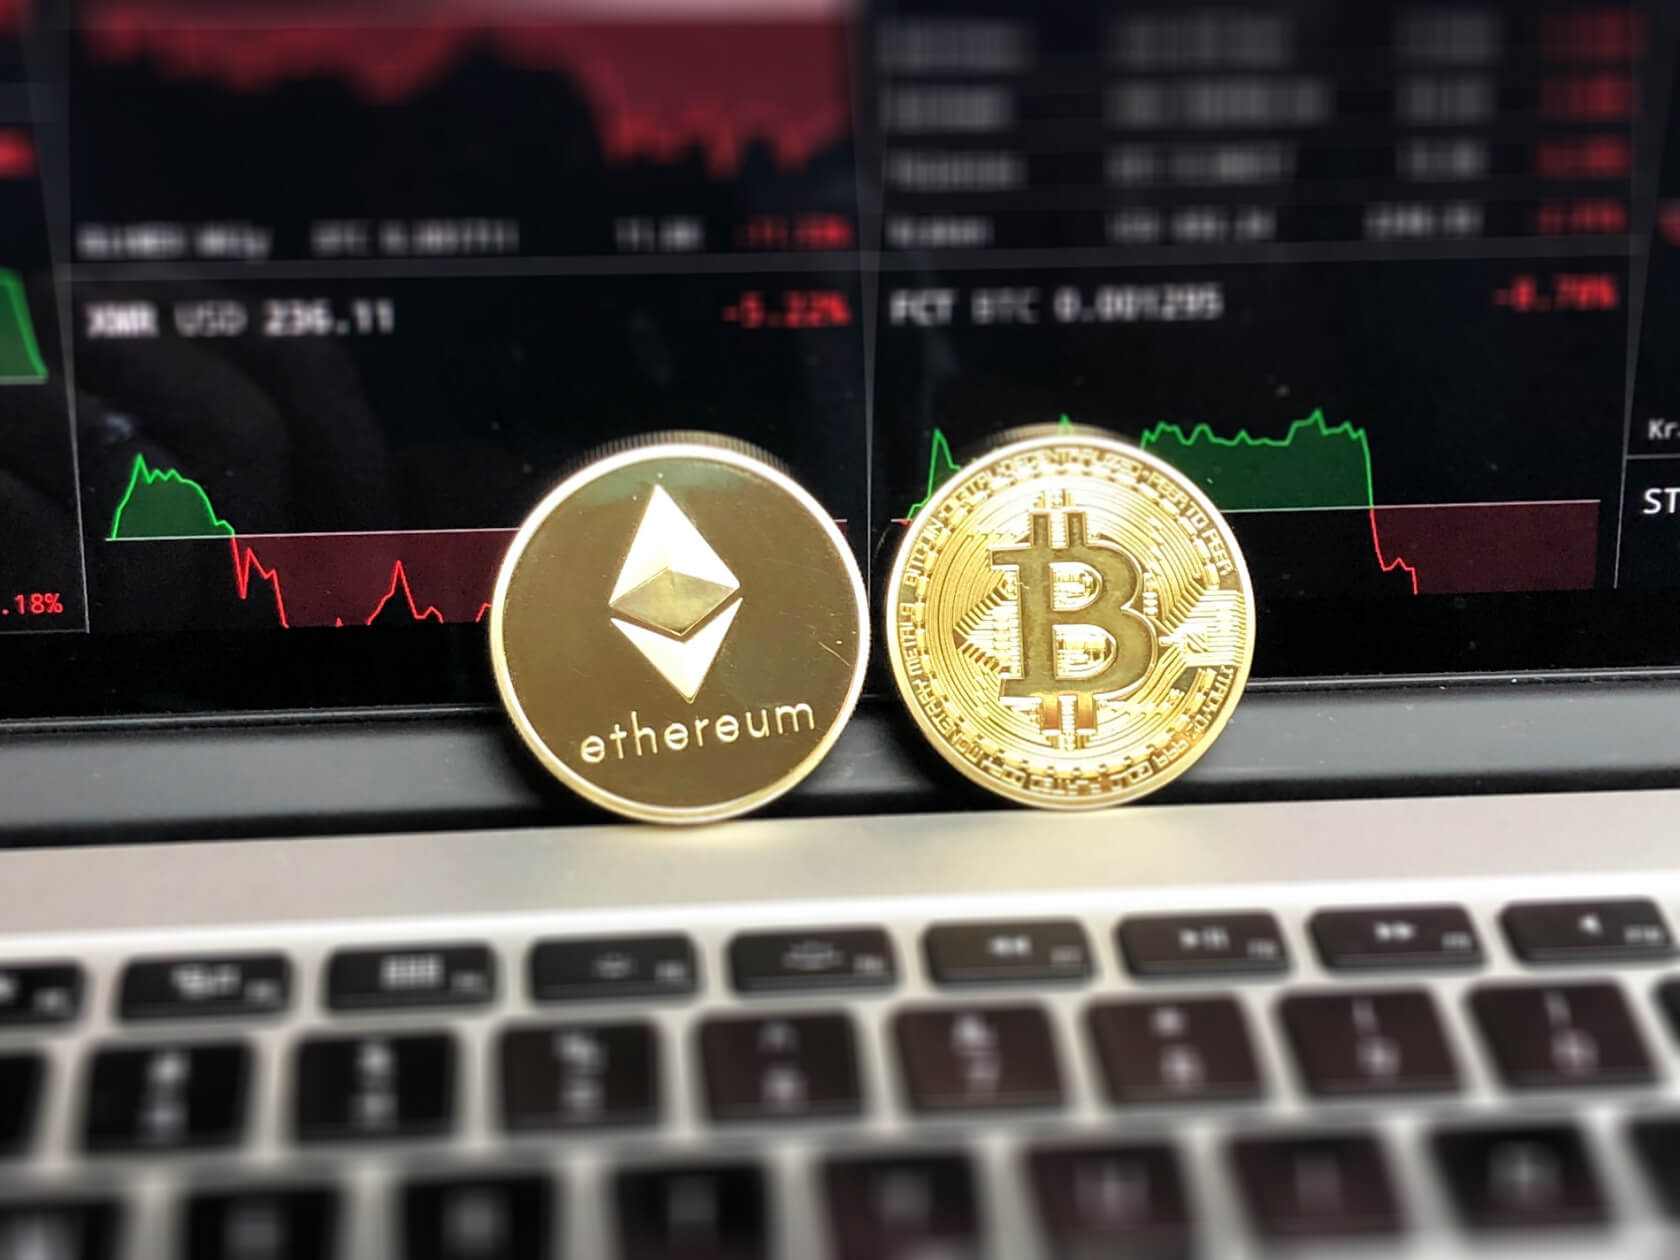 Bitcoin briefly drops below $6000; over $550 billion wiped off cryptocurrency market in under one month